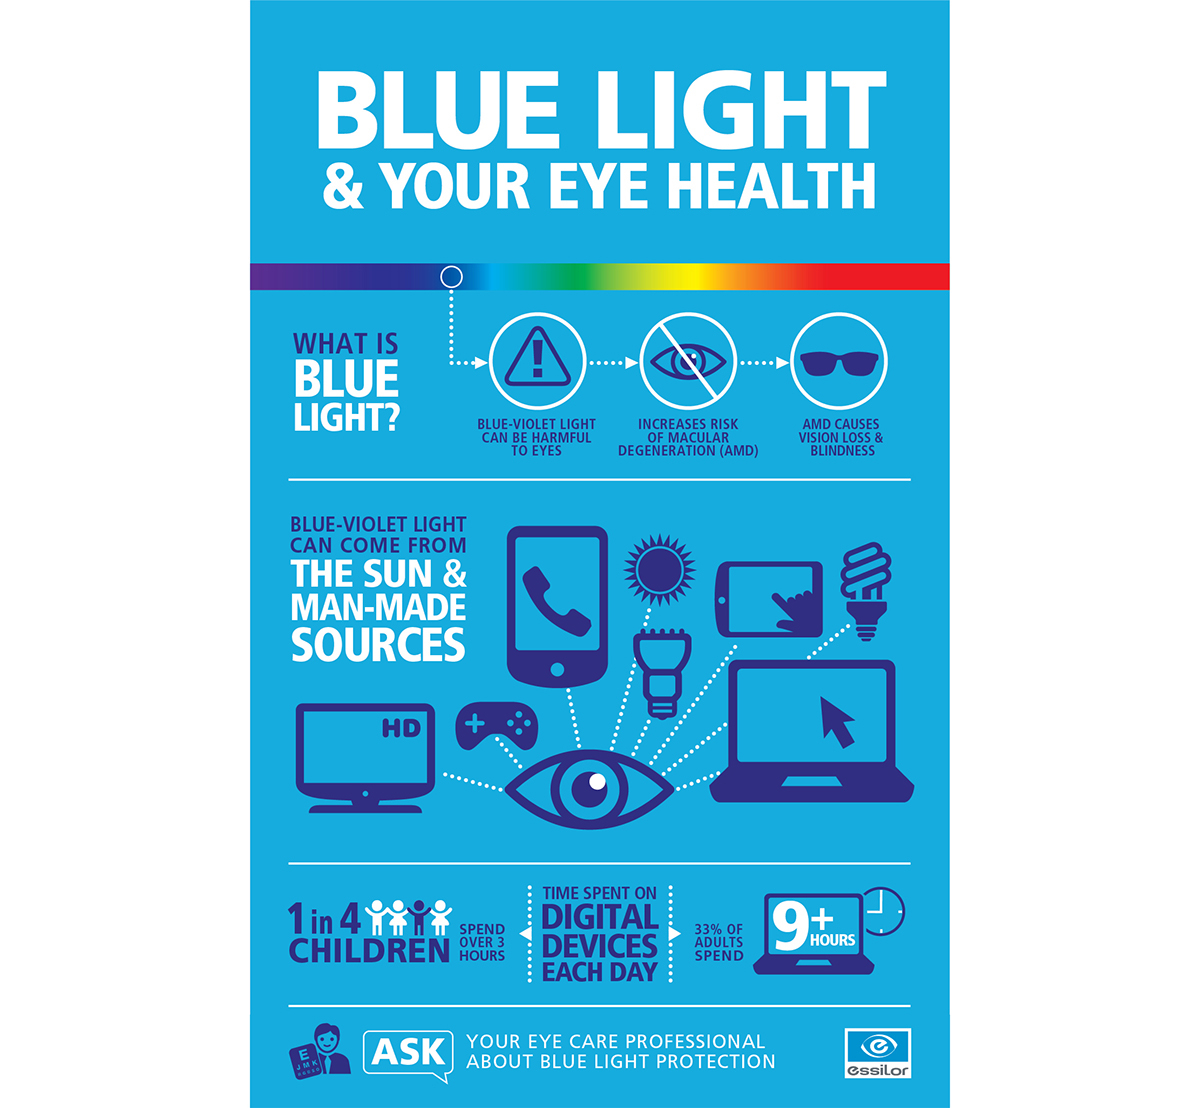 Infographic on blue light